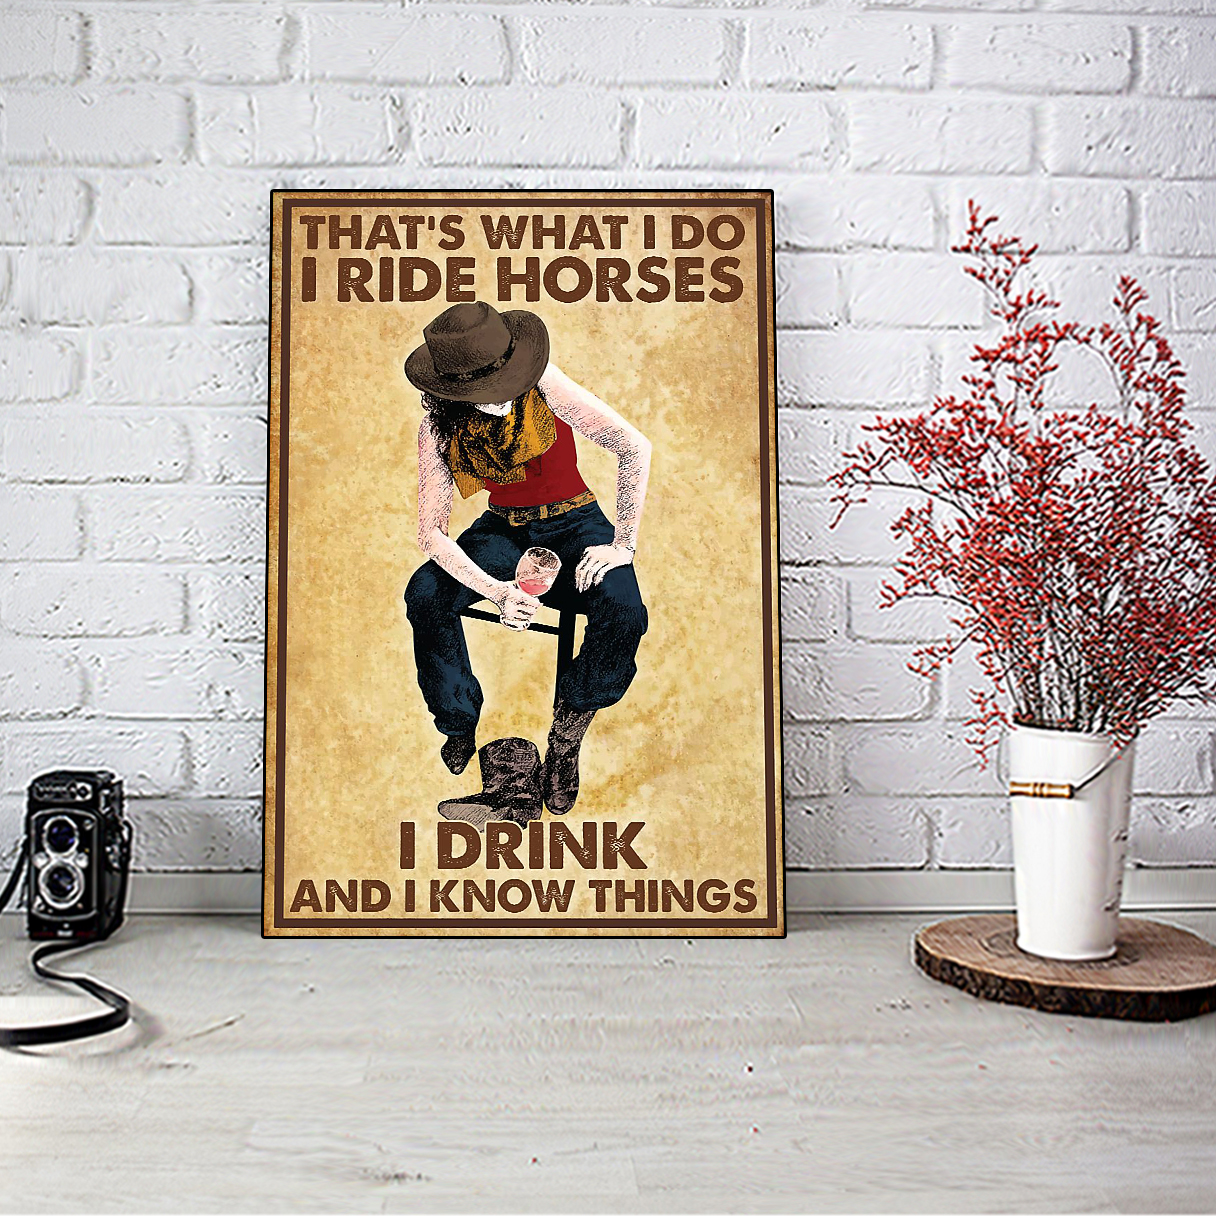 That's what I do I ride horses I drink and I know things cowgirl poster